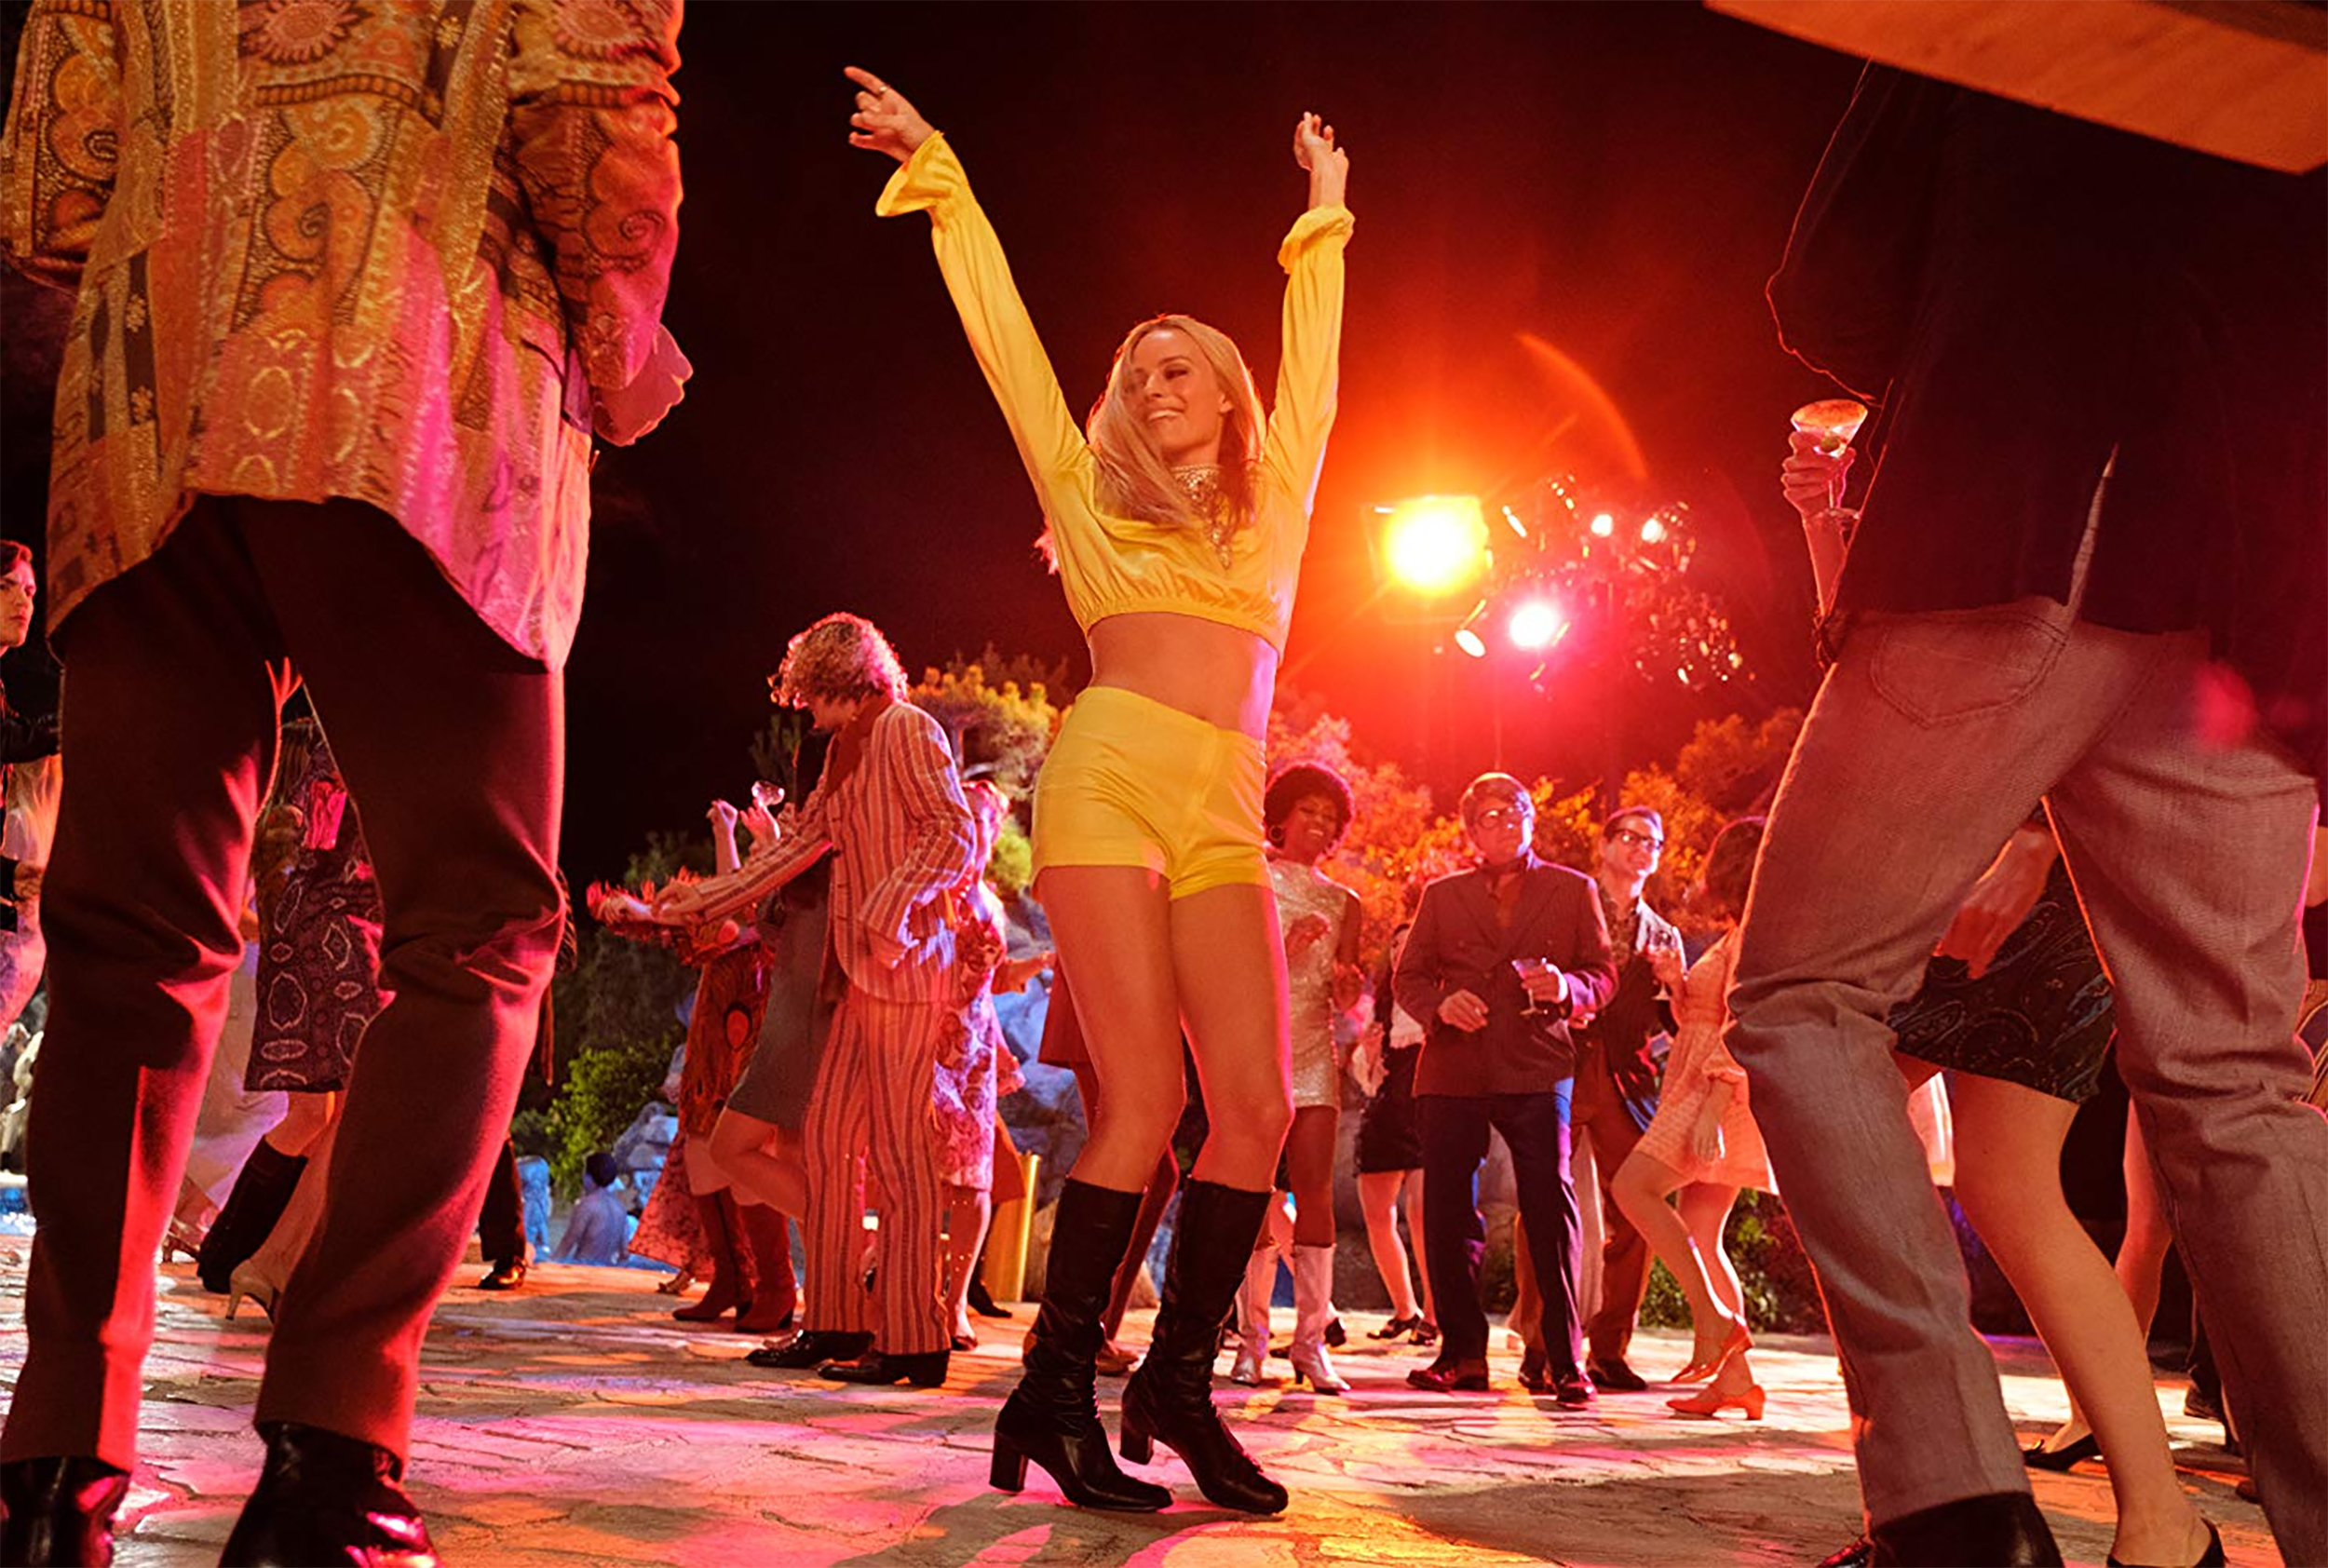 Margot Robbie in Once Upon a Time in Hollywood.